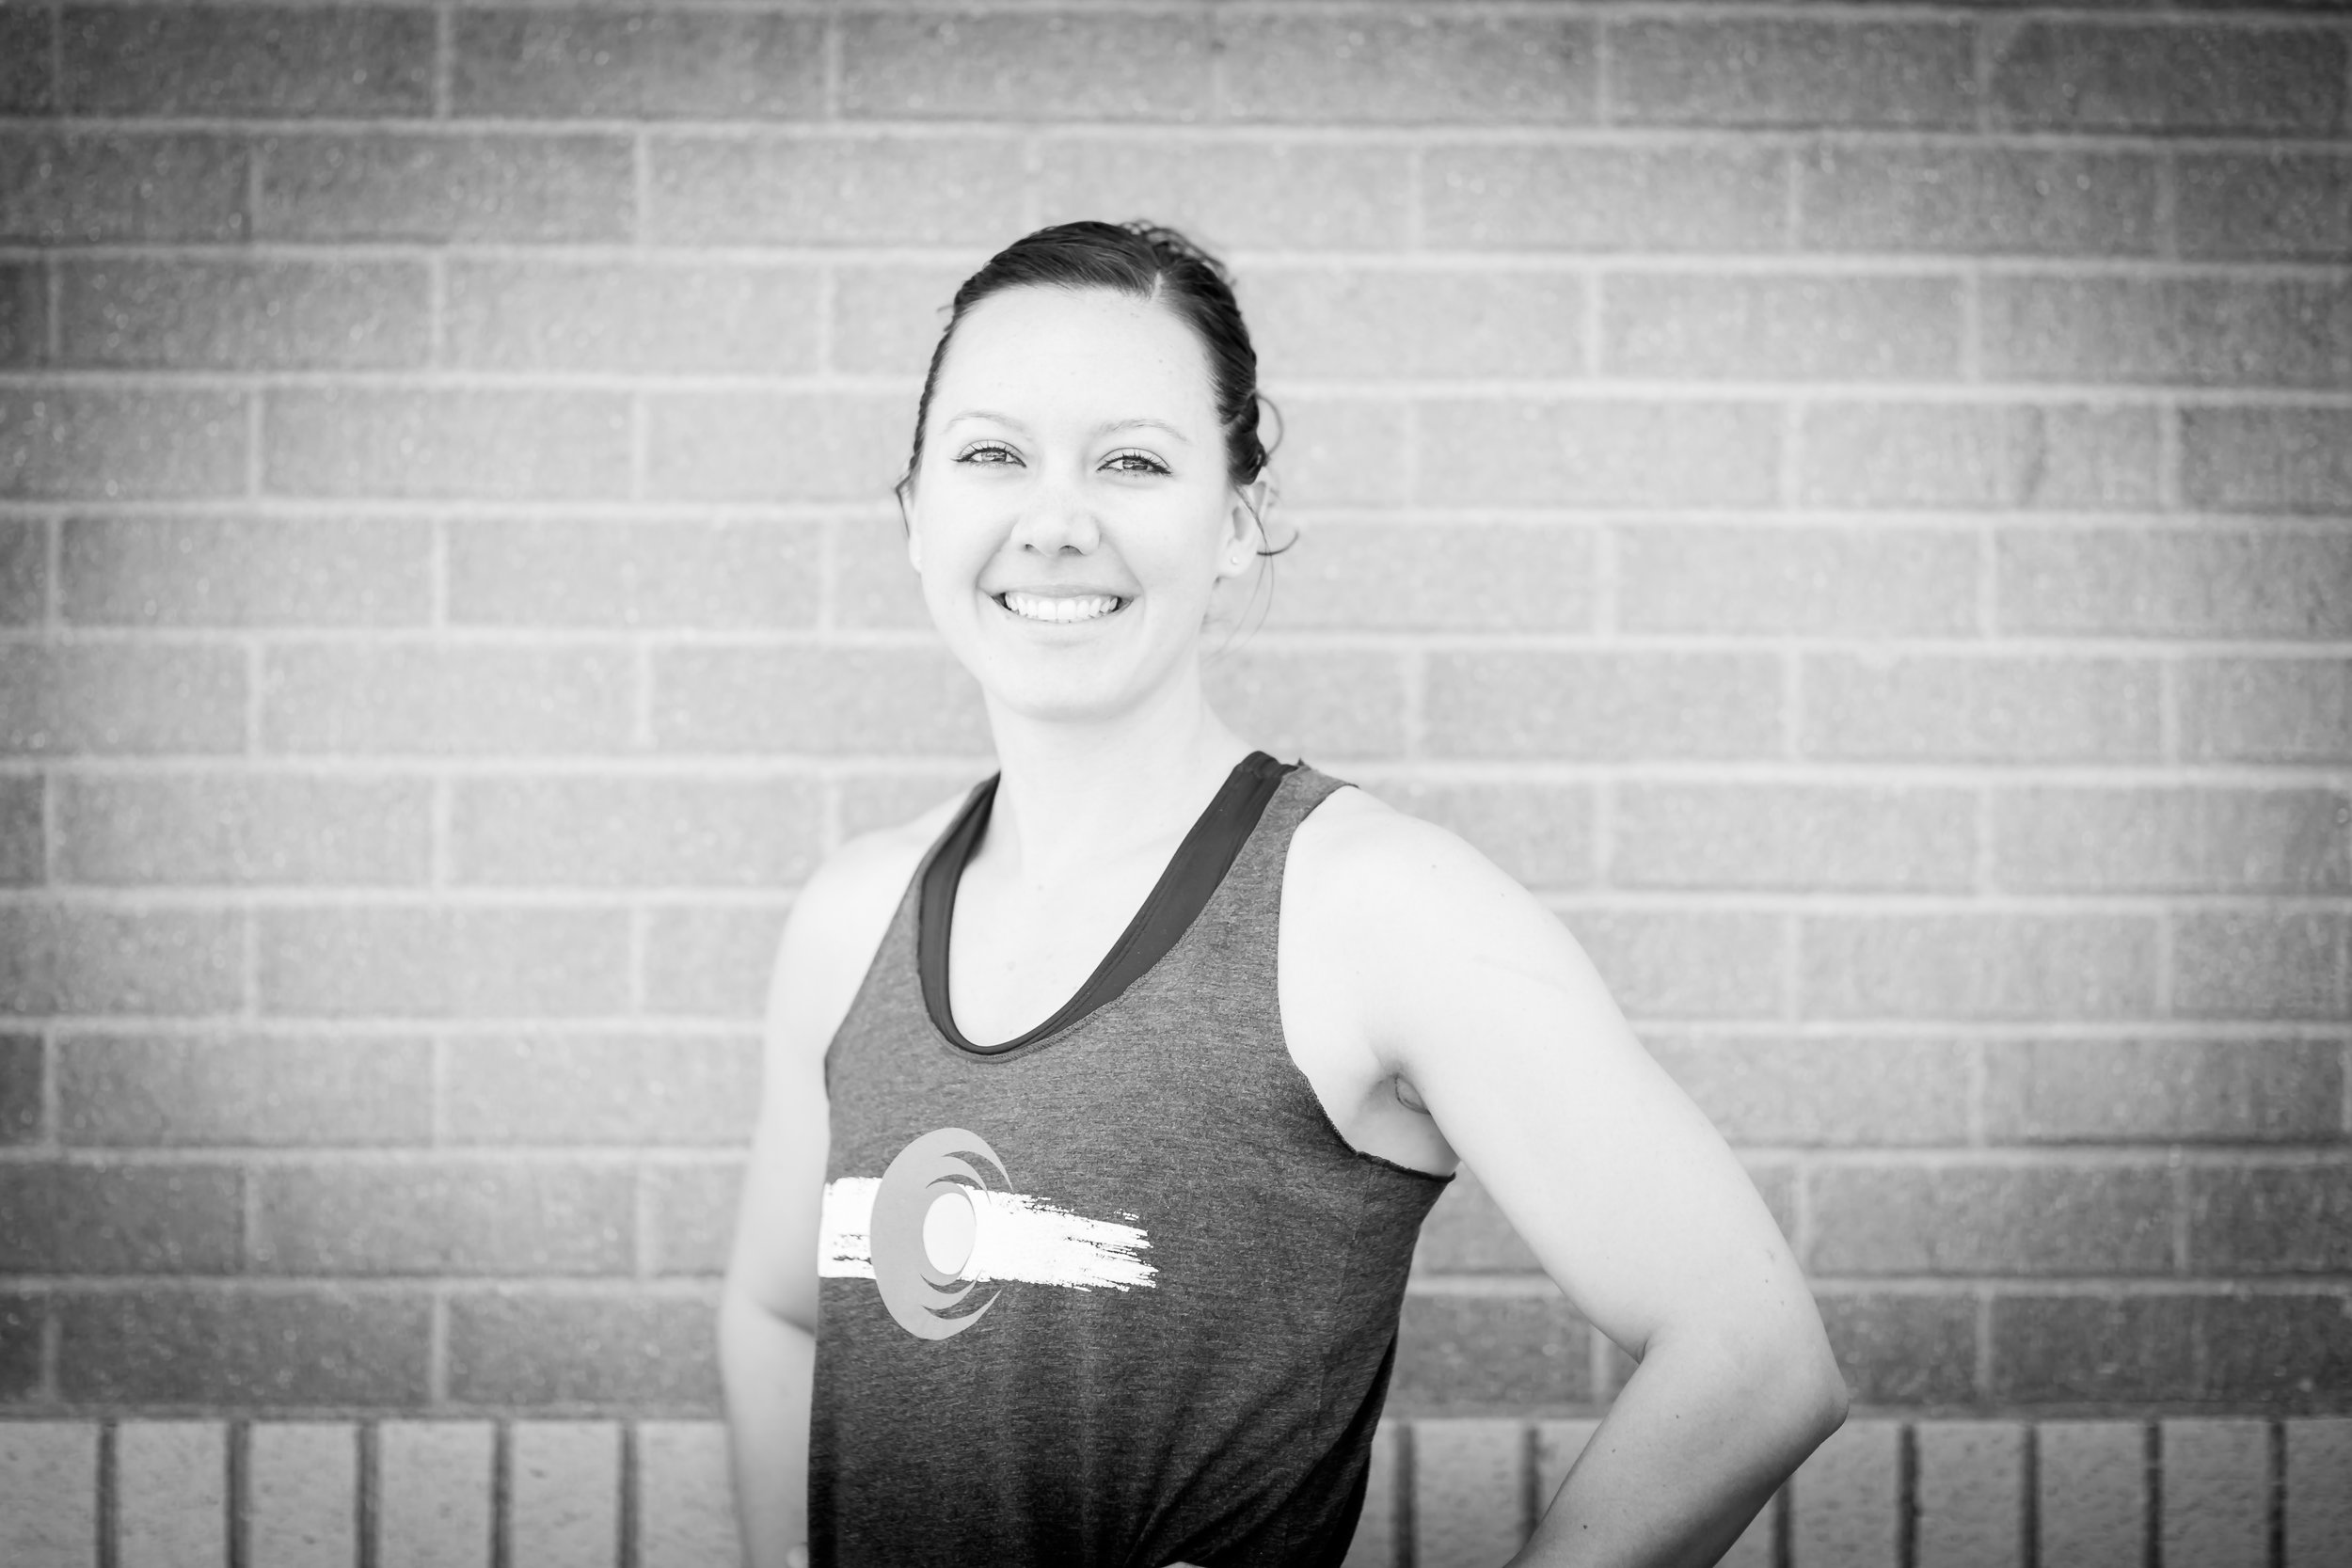 Megan - COACH, CF-L2I started training in CrossFit during my senior year while I was playing basketball at the Air Force Academy and have now been coaching CrossFit for 4 years.I received my Level 1 Certification in 2014 and started coaching at Lightning CrossFit in Florida. I later coached at Bombers CrossFit in Ohio until moving to Colorado Springs last year, and I'm super excited to be coaching again!I received my CrossFit Level 2 Certification in September of 2018, and I also have the USAW L1 Sports Performance Certification and the Precision Nutrition L1 Certification.I have a love and passion for education and teaching, and Aside from coaching CrossFit, I am an Operations Research Analyst in the Air Force and currently teach in the math department at the AF Academy.